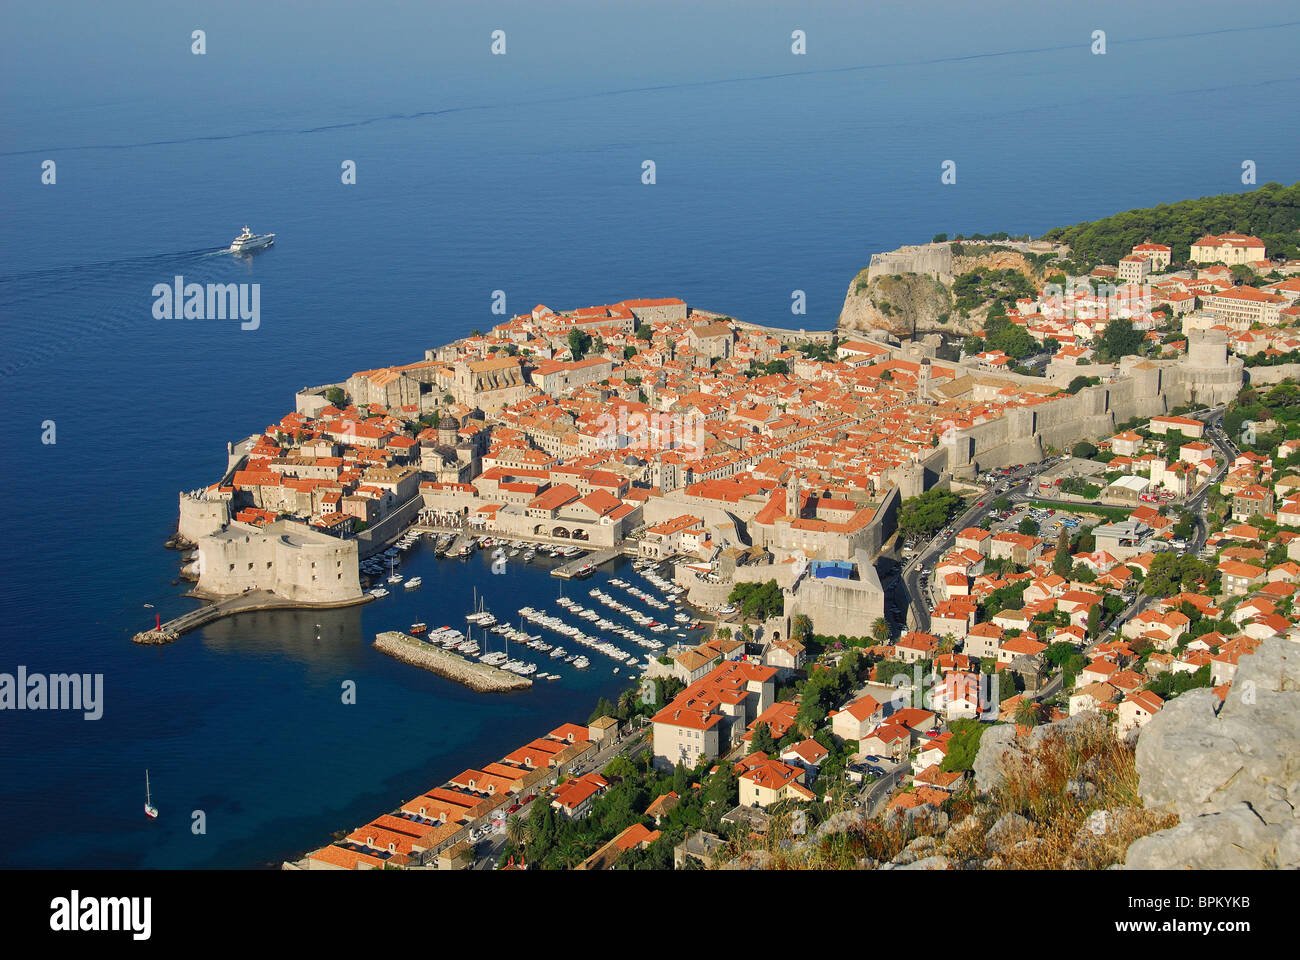 DUBROVNIK, CROATIA. A dawn view of the mediaeval walled town and harbour. 2010. - Stock Image